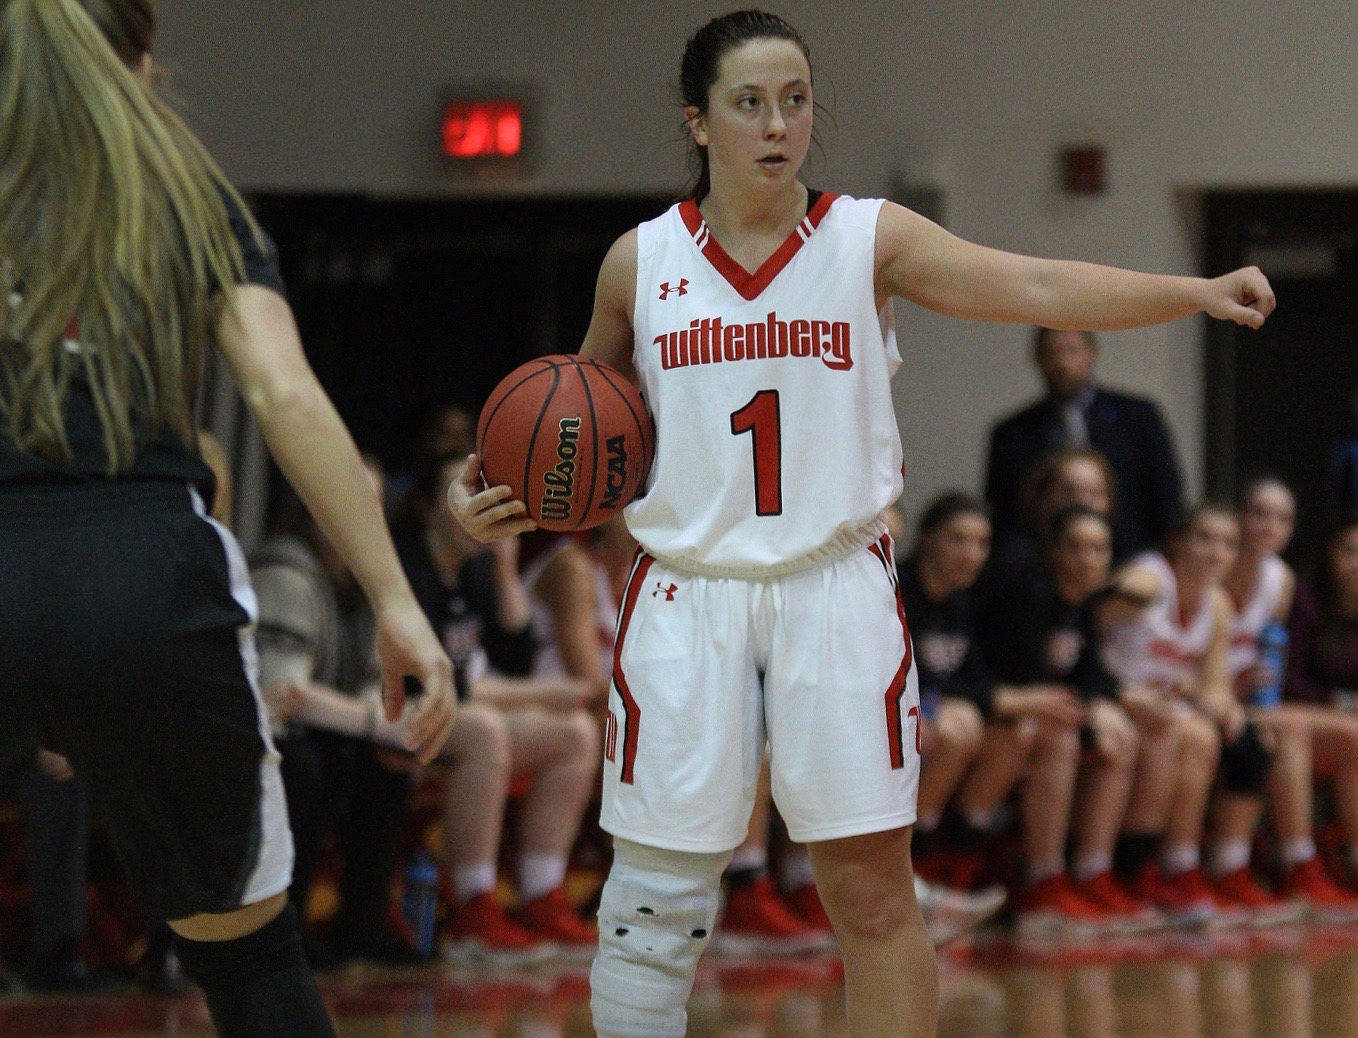 Sophomore Delaney Williams hit a clutch three-pointer at the end of regulation, but Denison knocked down a bucket with 0.9 seconds left in double OT to give the Big Red a 78-76 win over the Tigers